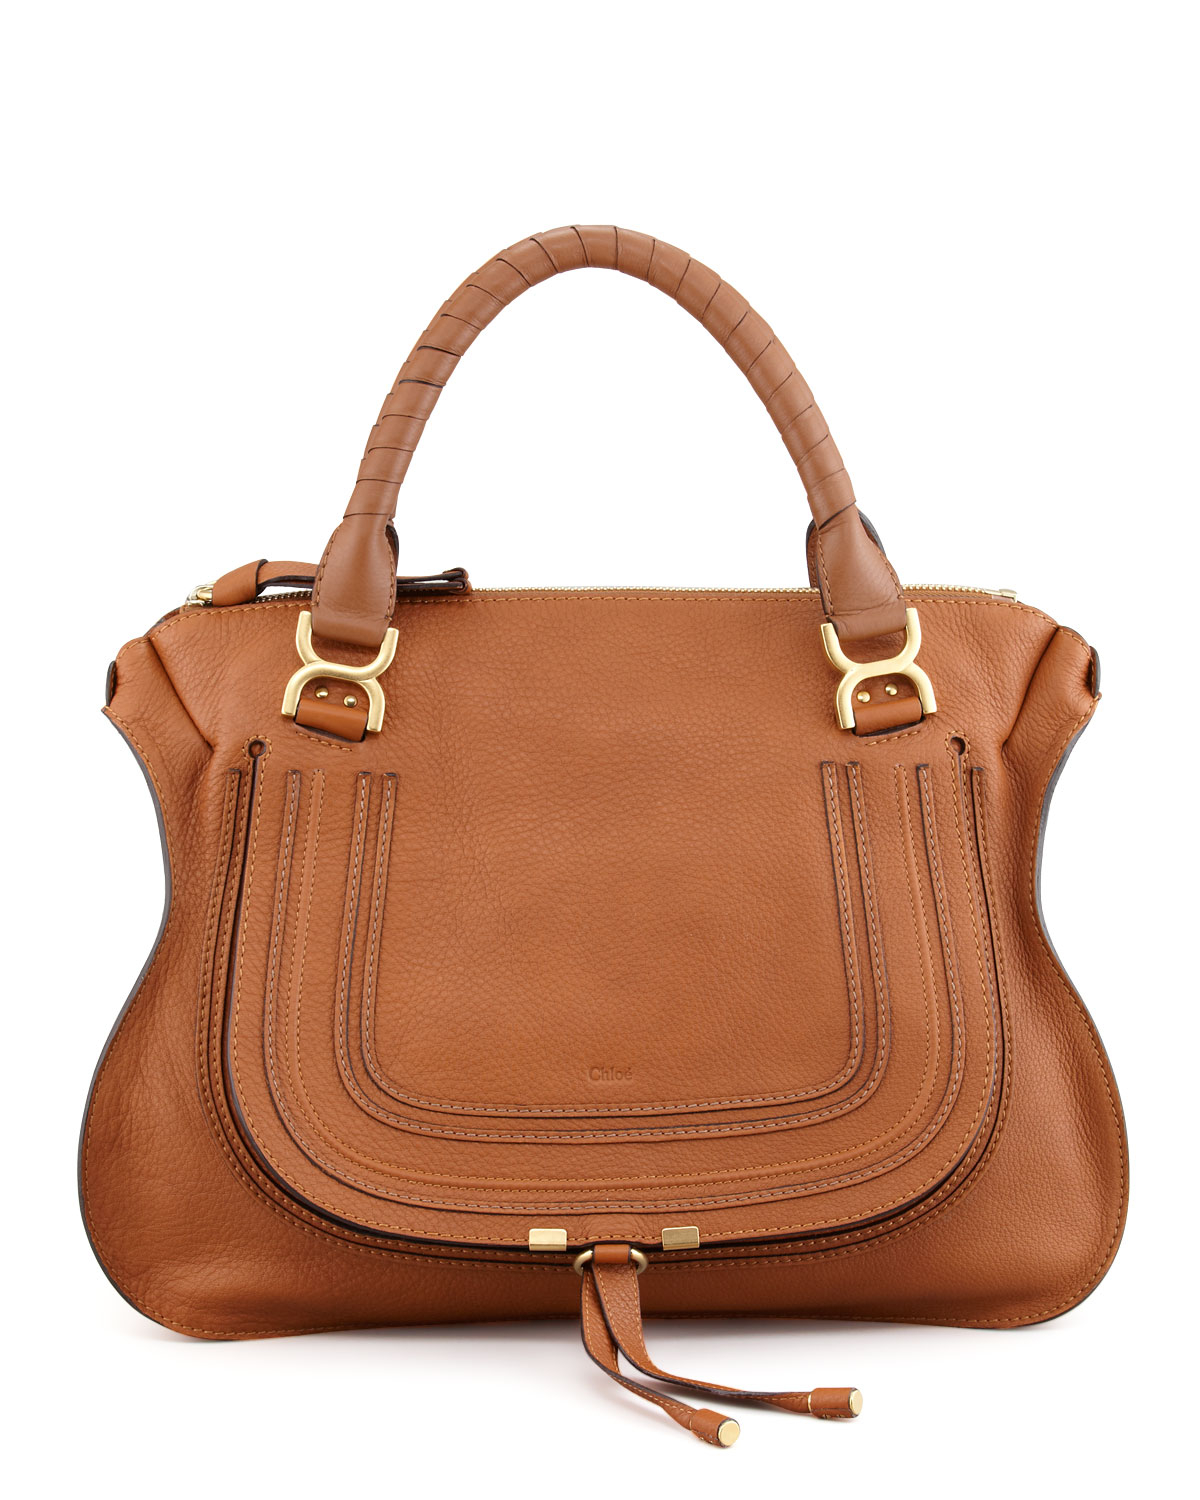 chloe pink handbag - Chlo�� Marcie Large Leather Satchel Bag in Brown (TAN) | Lyst